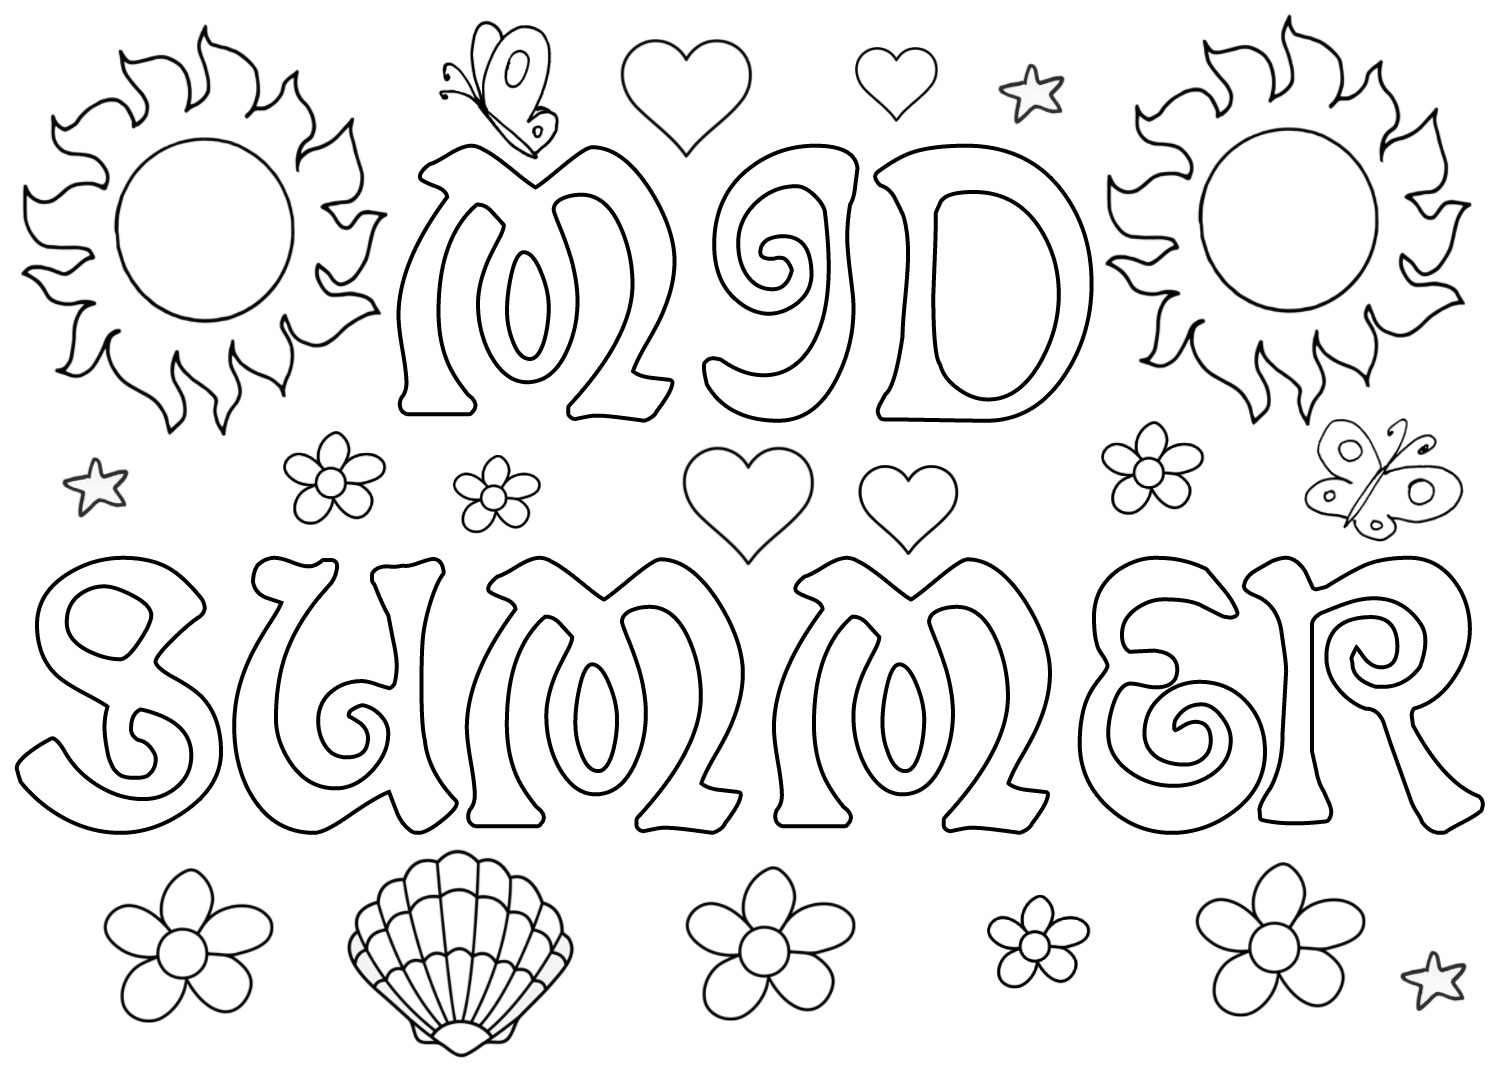 Printable mid-summer colouring in page